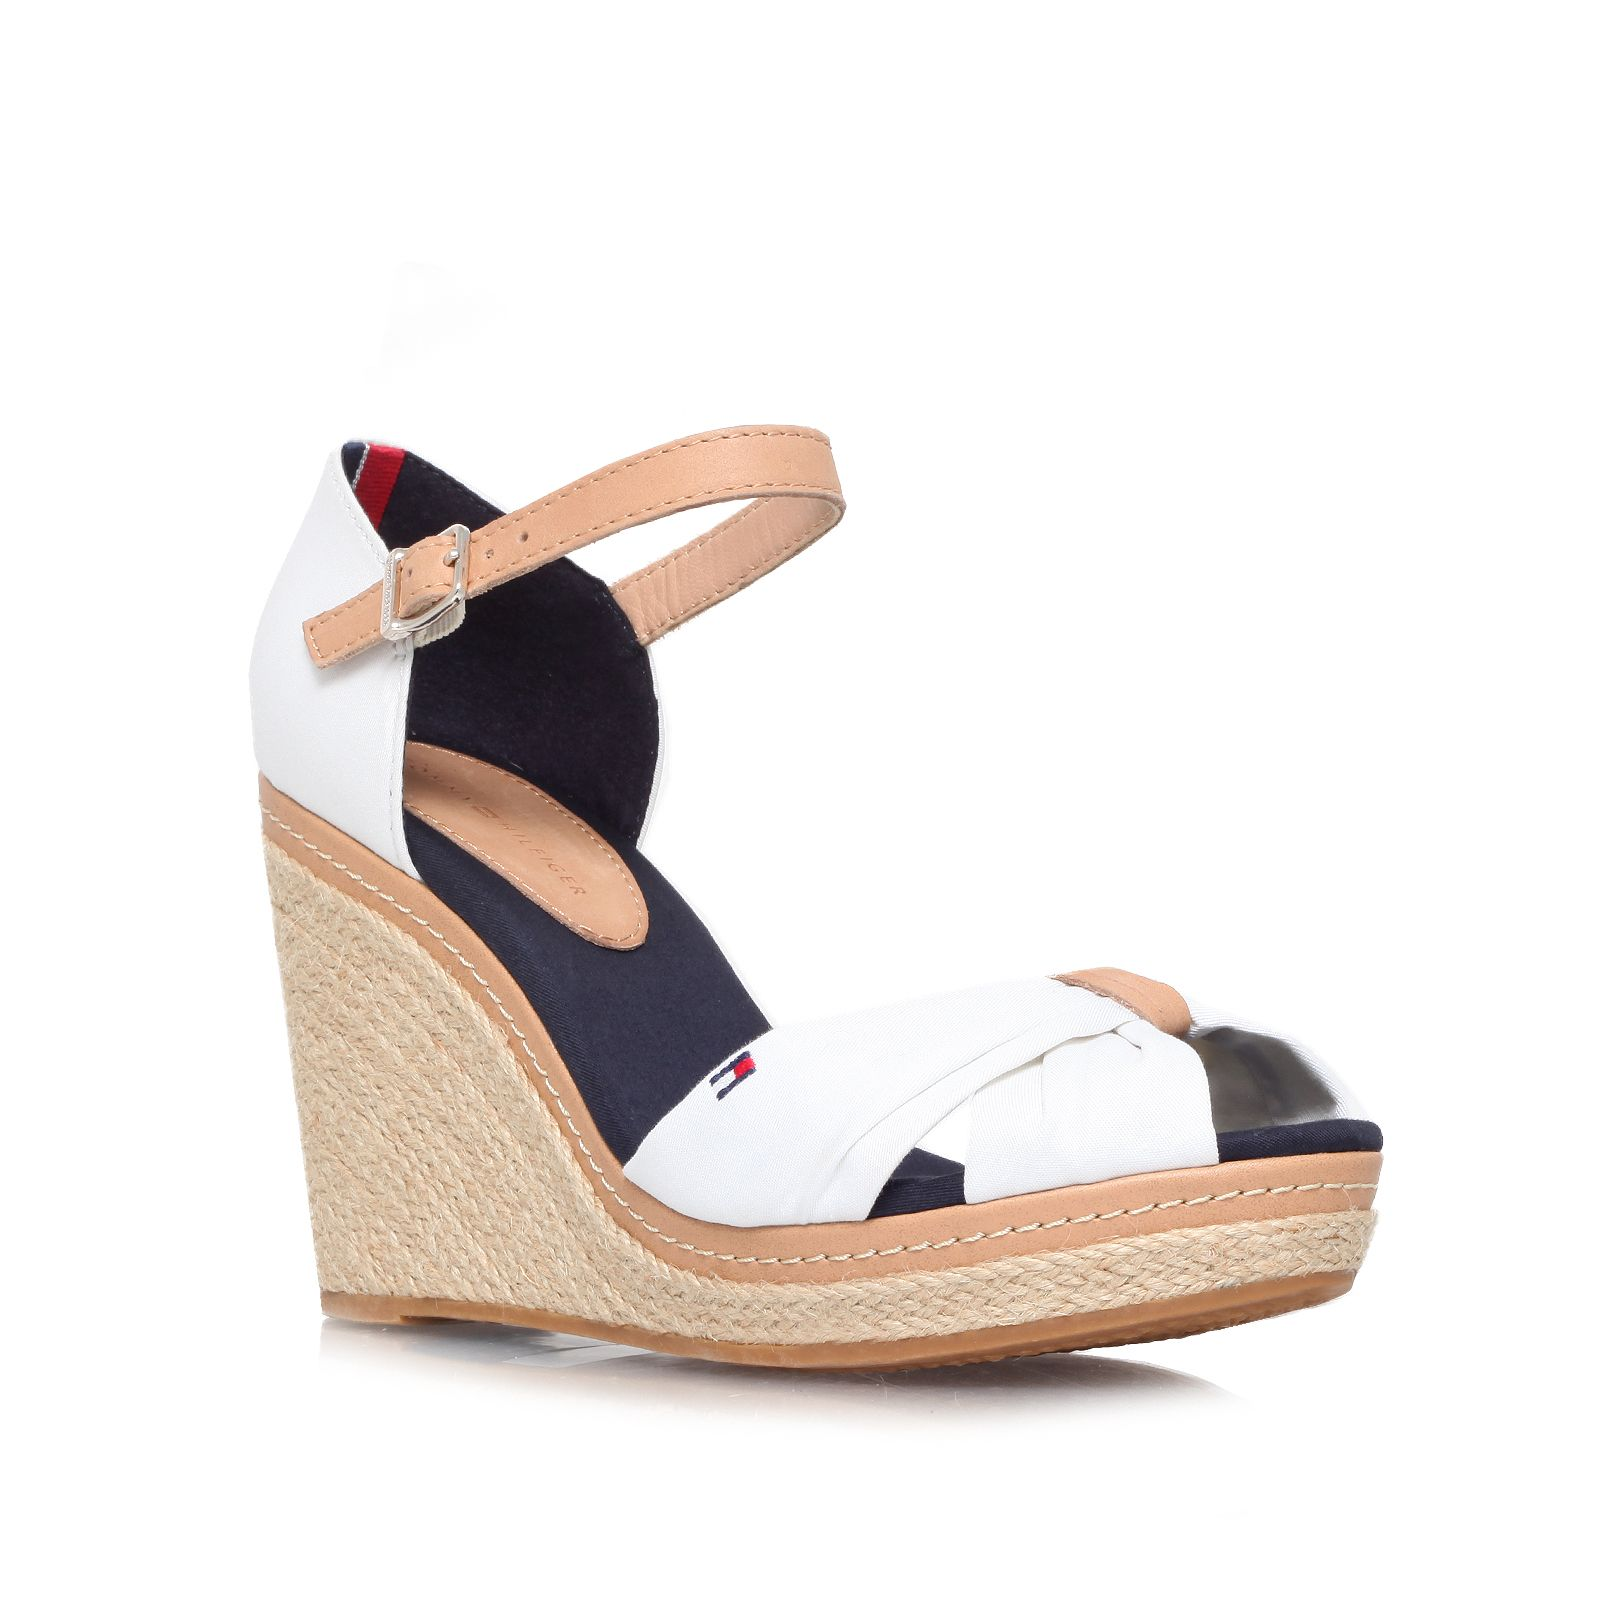 Emery 54d high heel wedge sandals